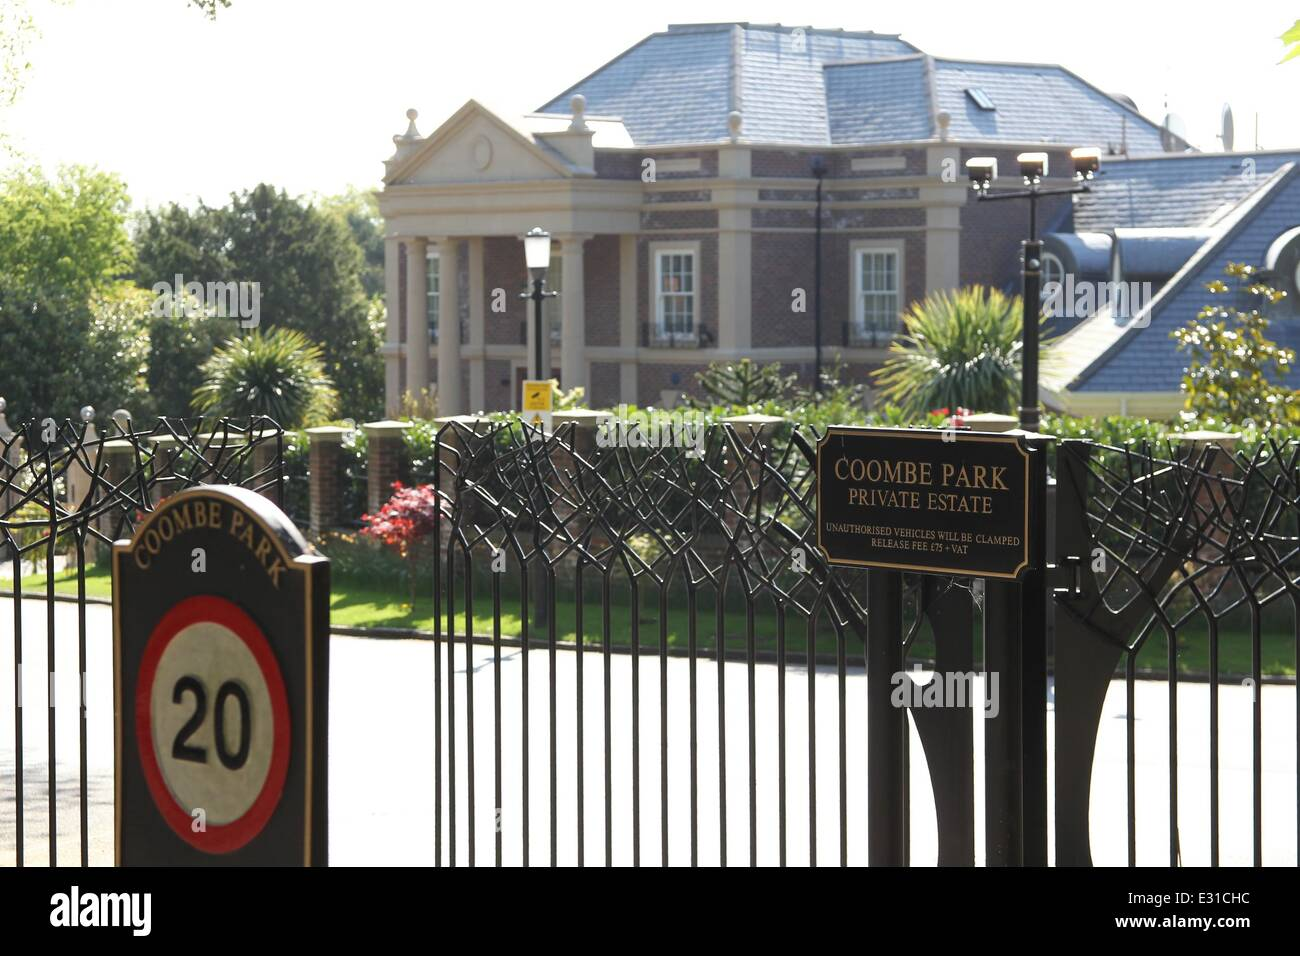 The Entrance To Coombe Park Estate In Kingston Upon Thames